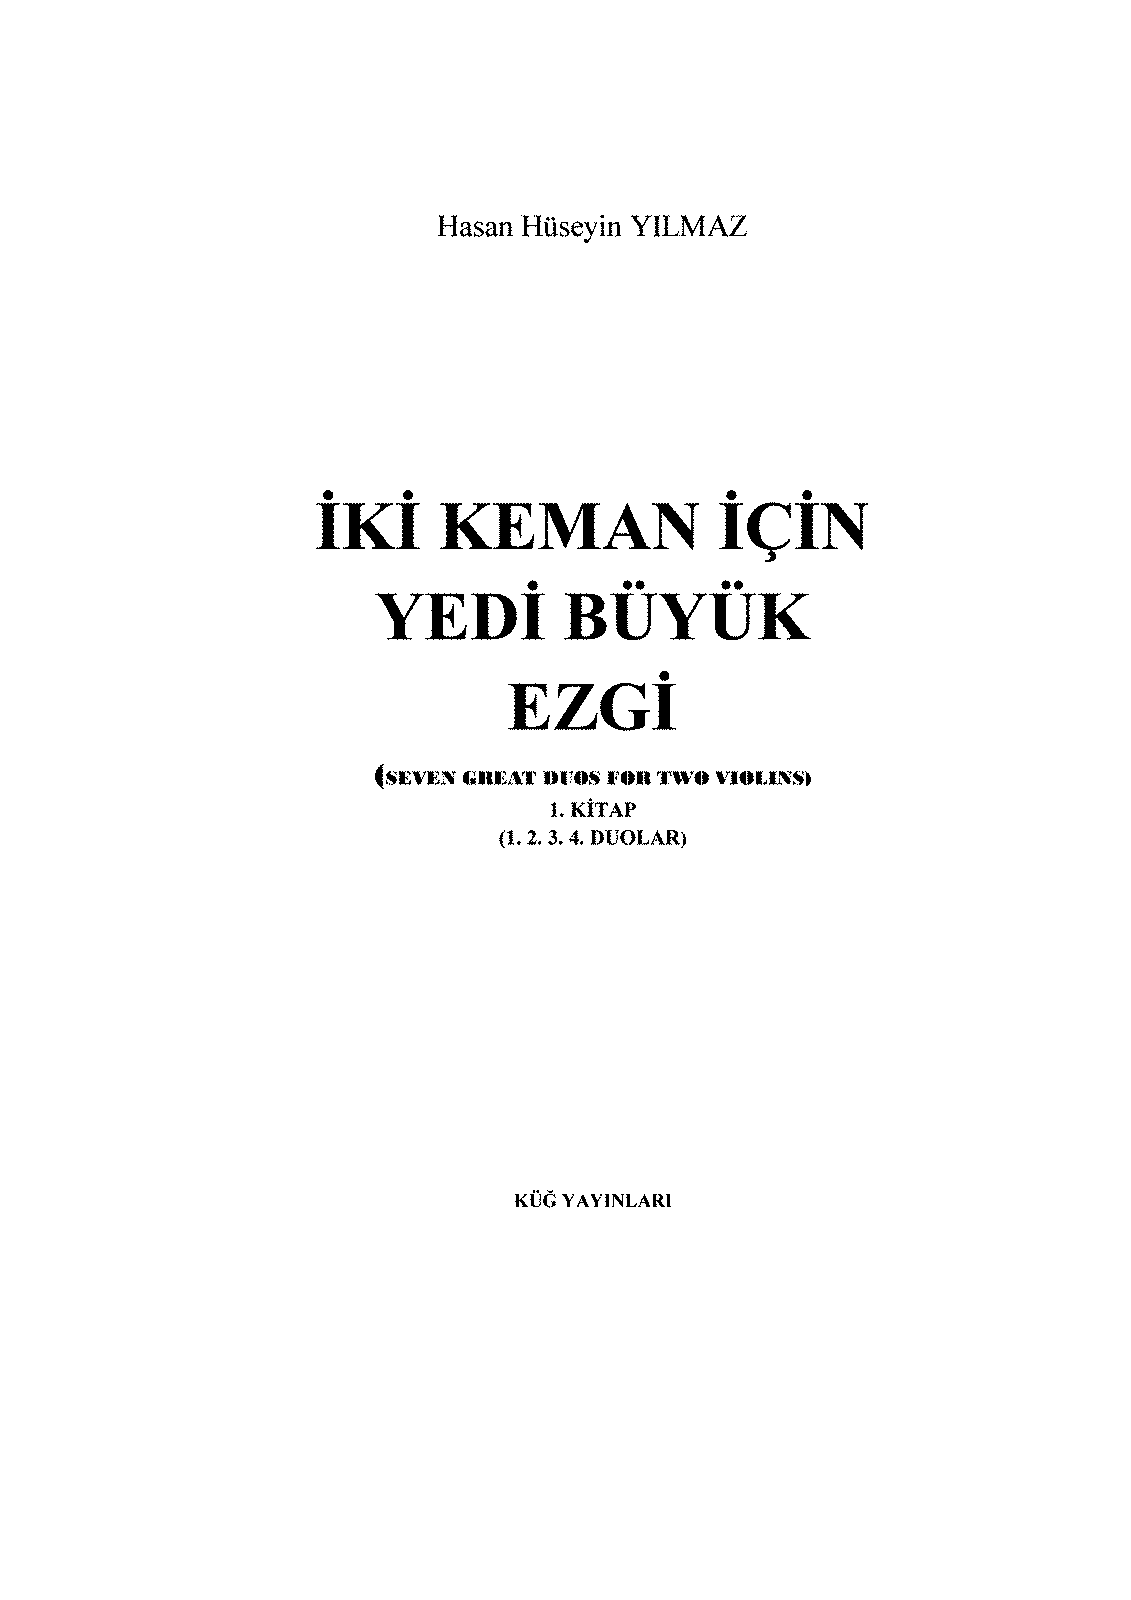 PMLP538860-Seven Great Duos for Two Violins. Composed by Hasan Hüseyin YILMAZ. Book I.(No. 1-2-3-4).pdf